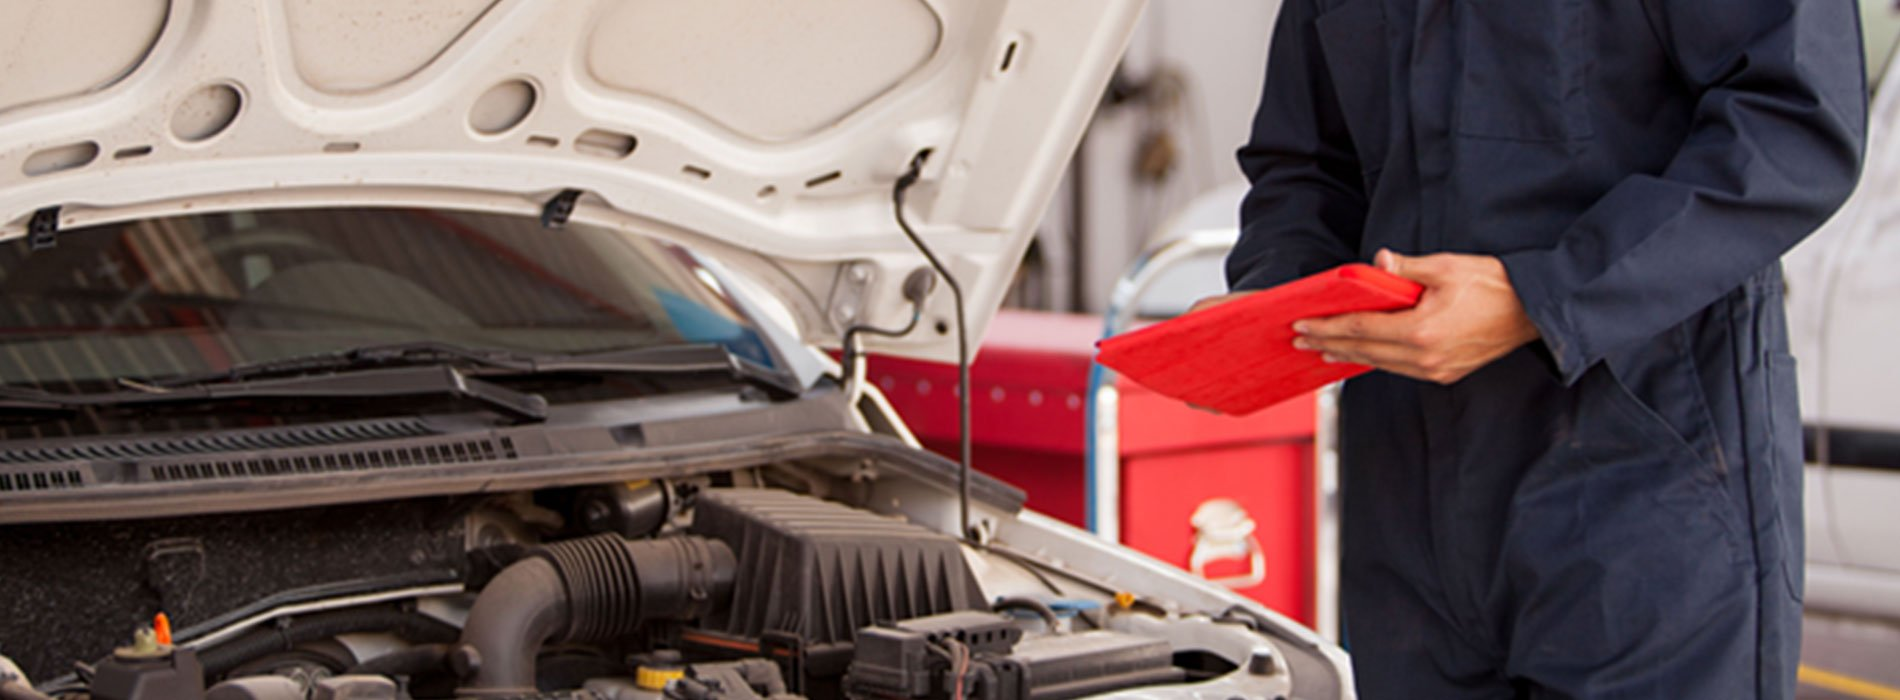 Auto Repair and Maintenance